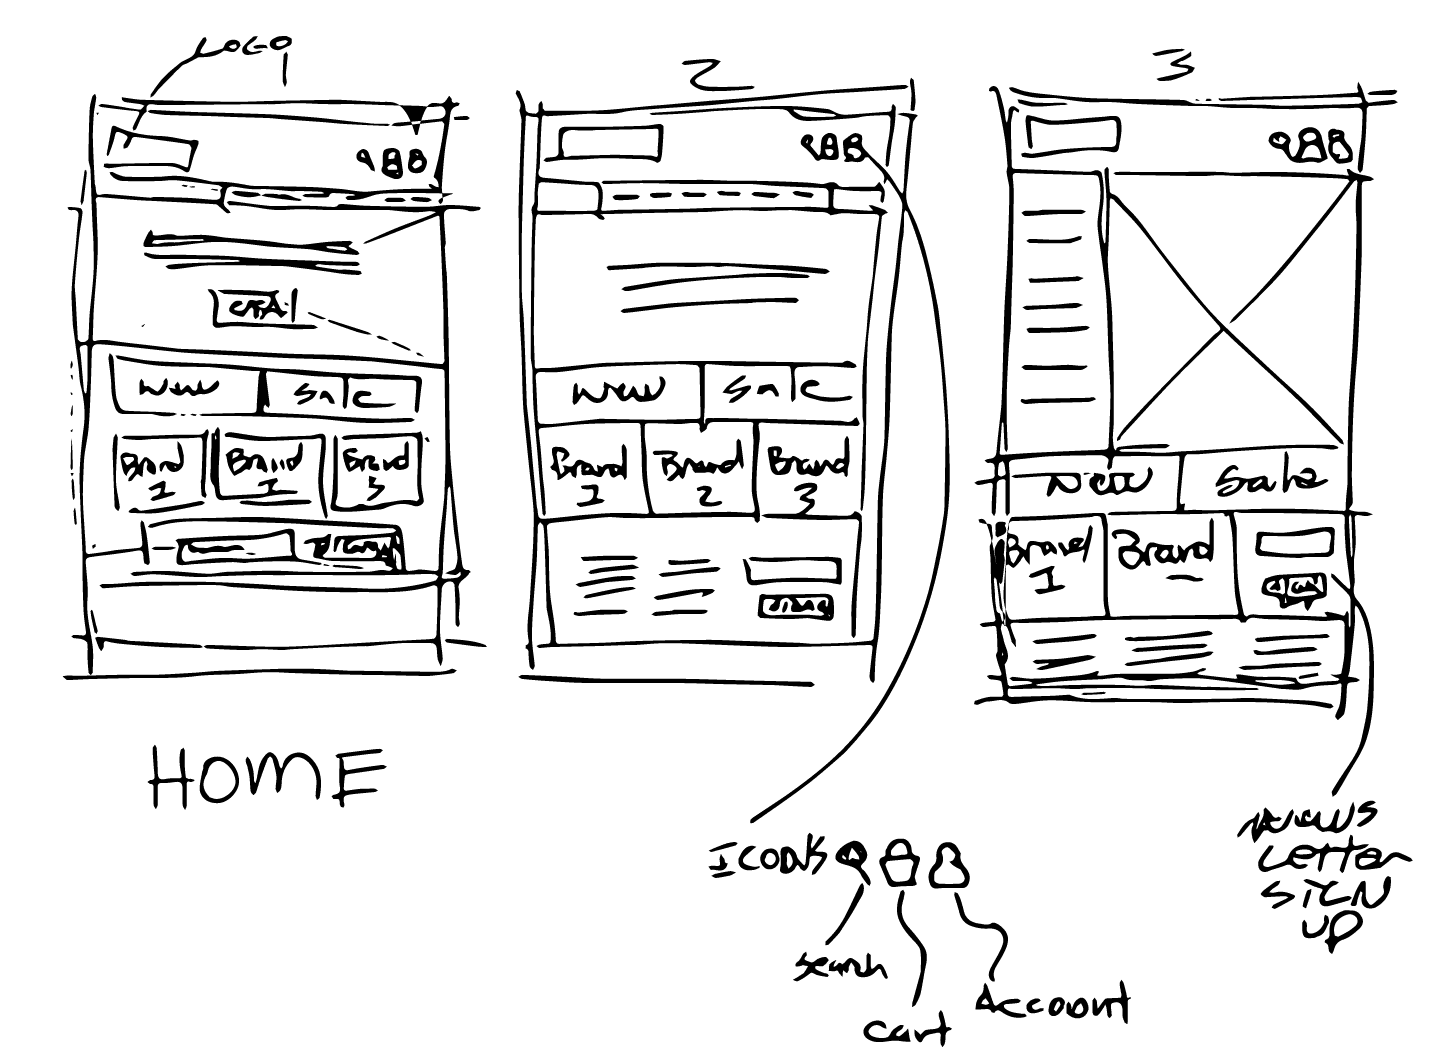 Standard Goods - Home page - Sketch Options